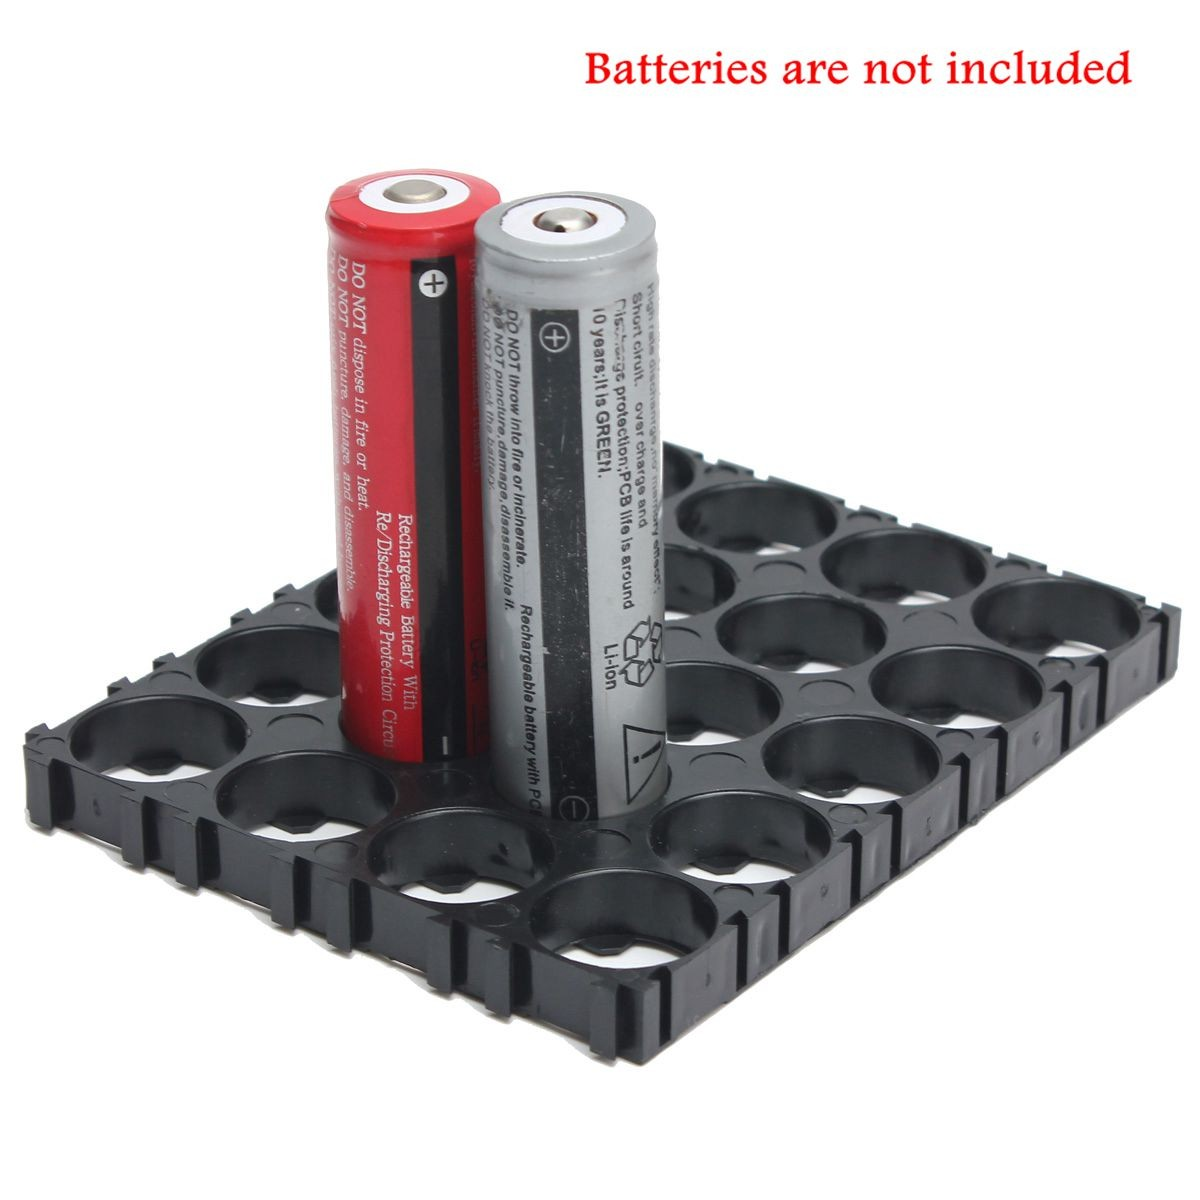 CLAITE 4x5 18650 Battery Storage Case Box Holder Spacer Radiating Shell EV Pack Plastic Holder Bracket